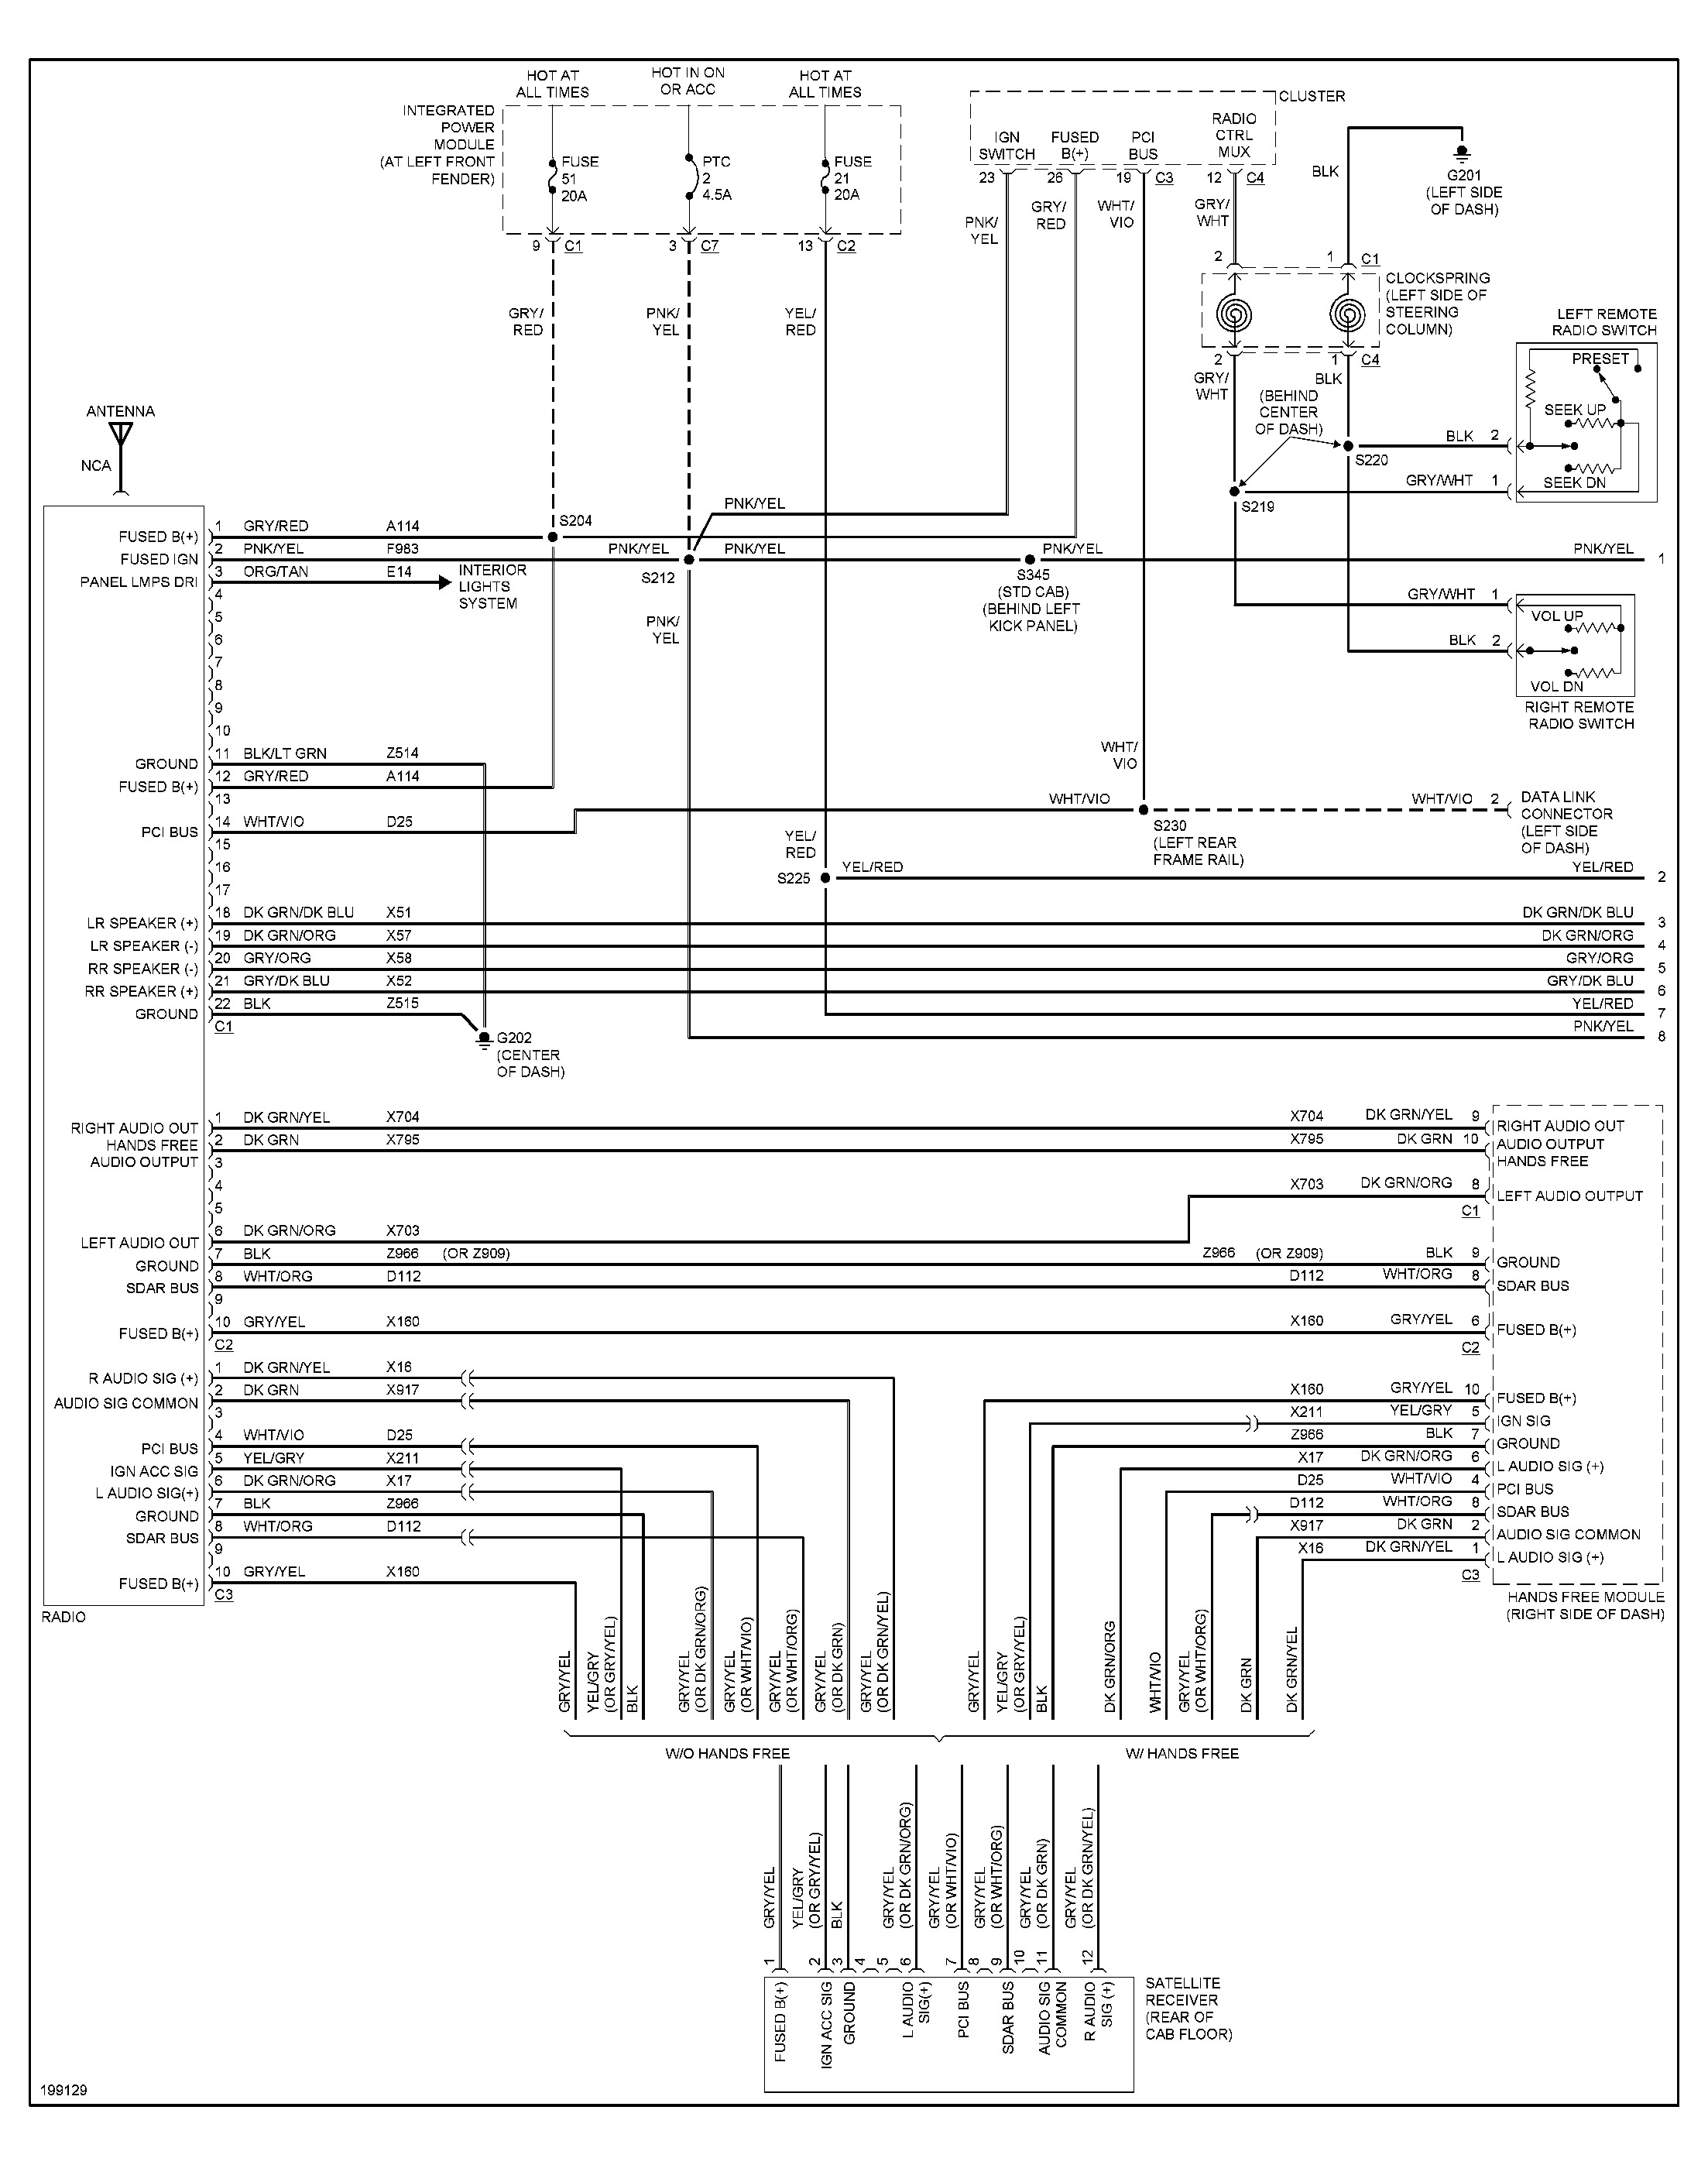 30 2004 Dodge Ram Radio Wiring Diagram Manual Guide